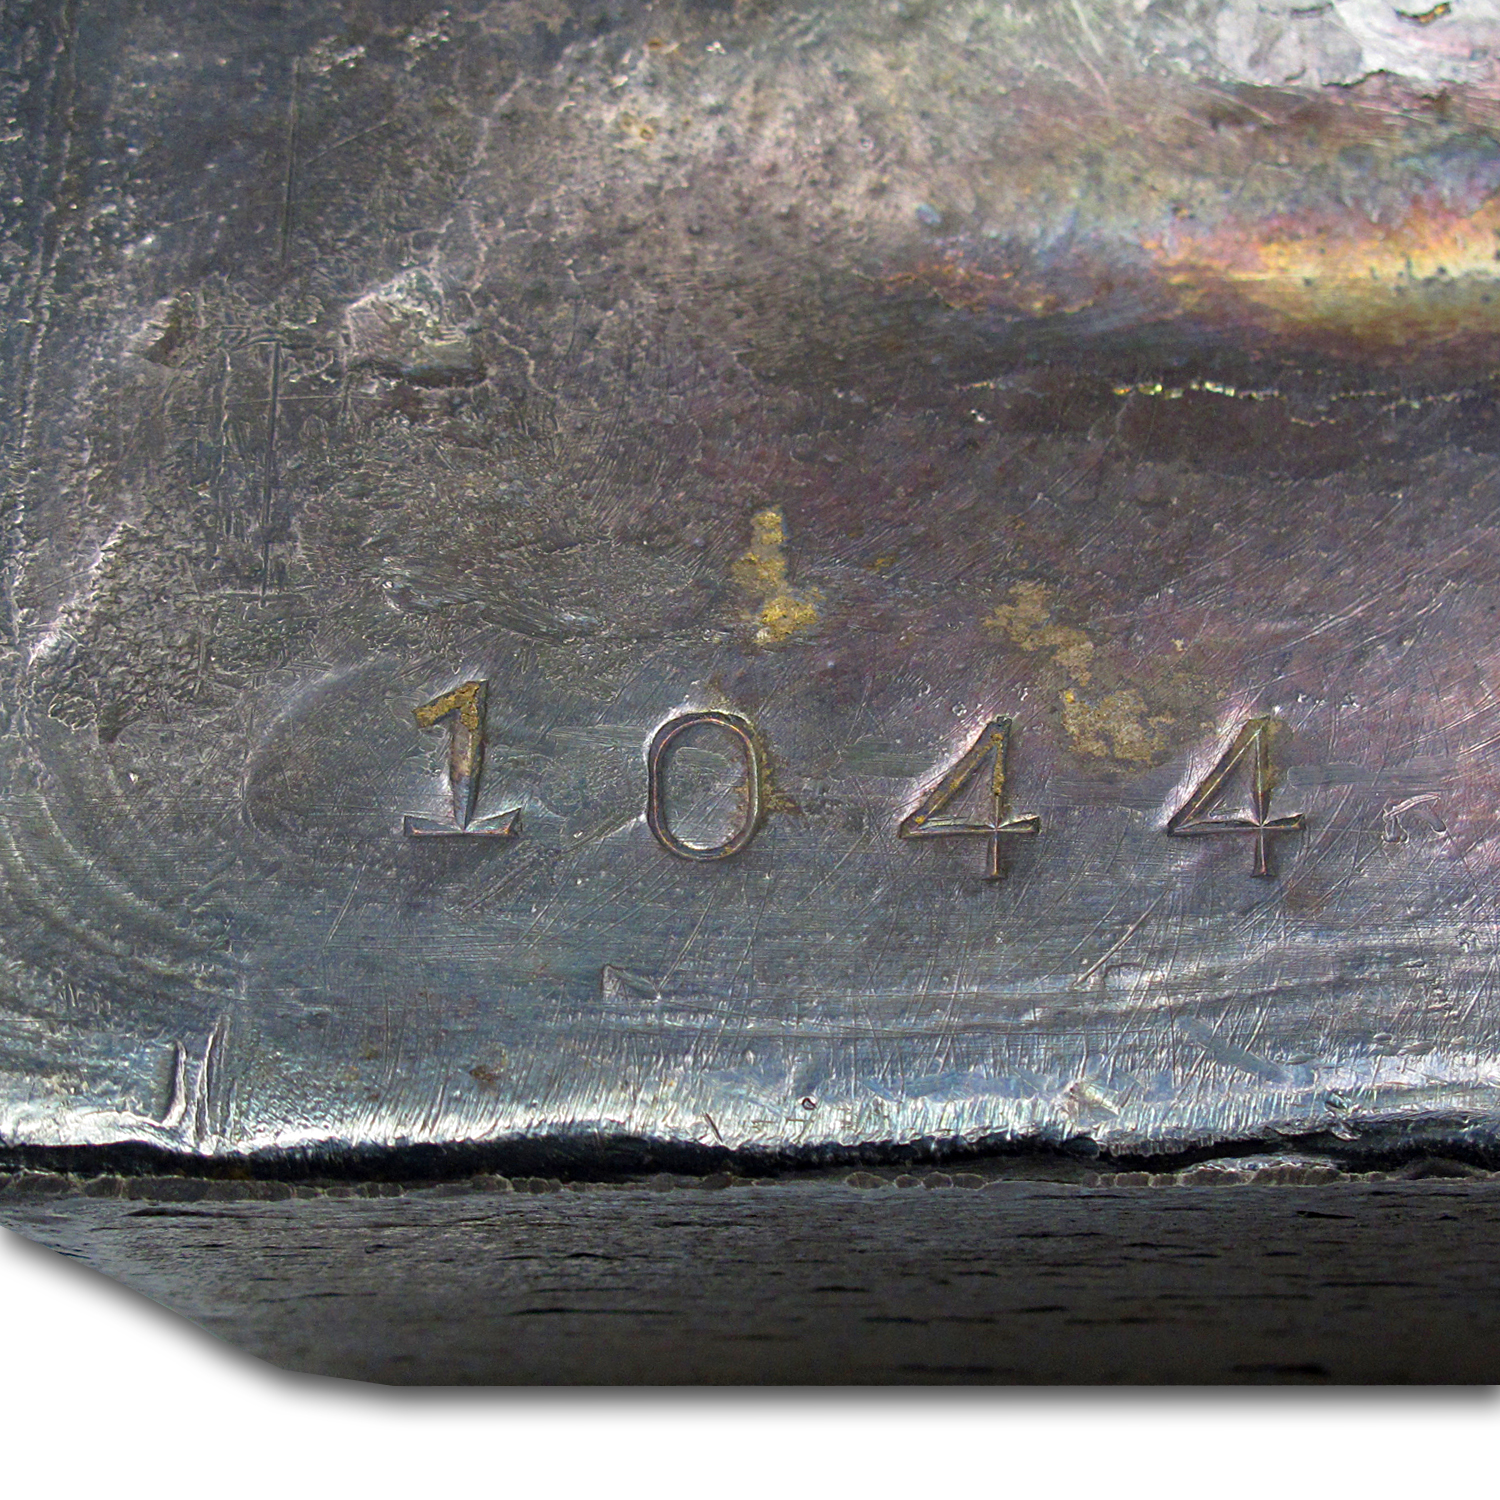 1044.7 oz Silver Bar - Pease & Curren